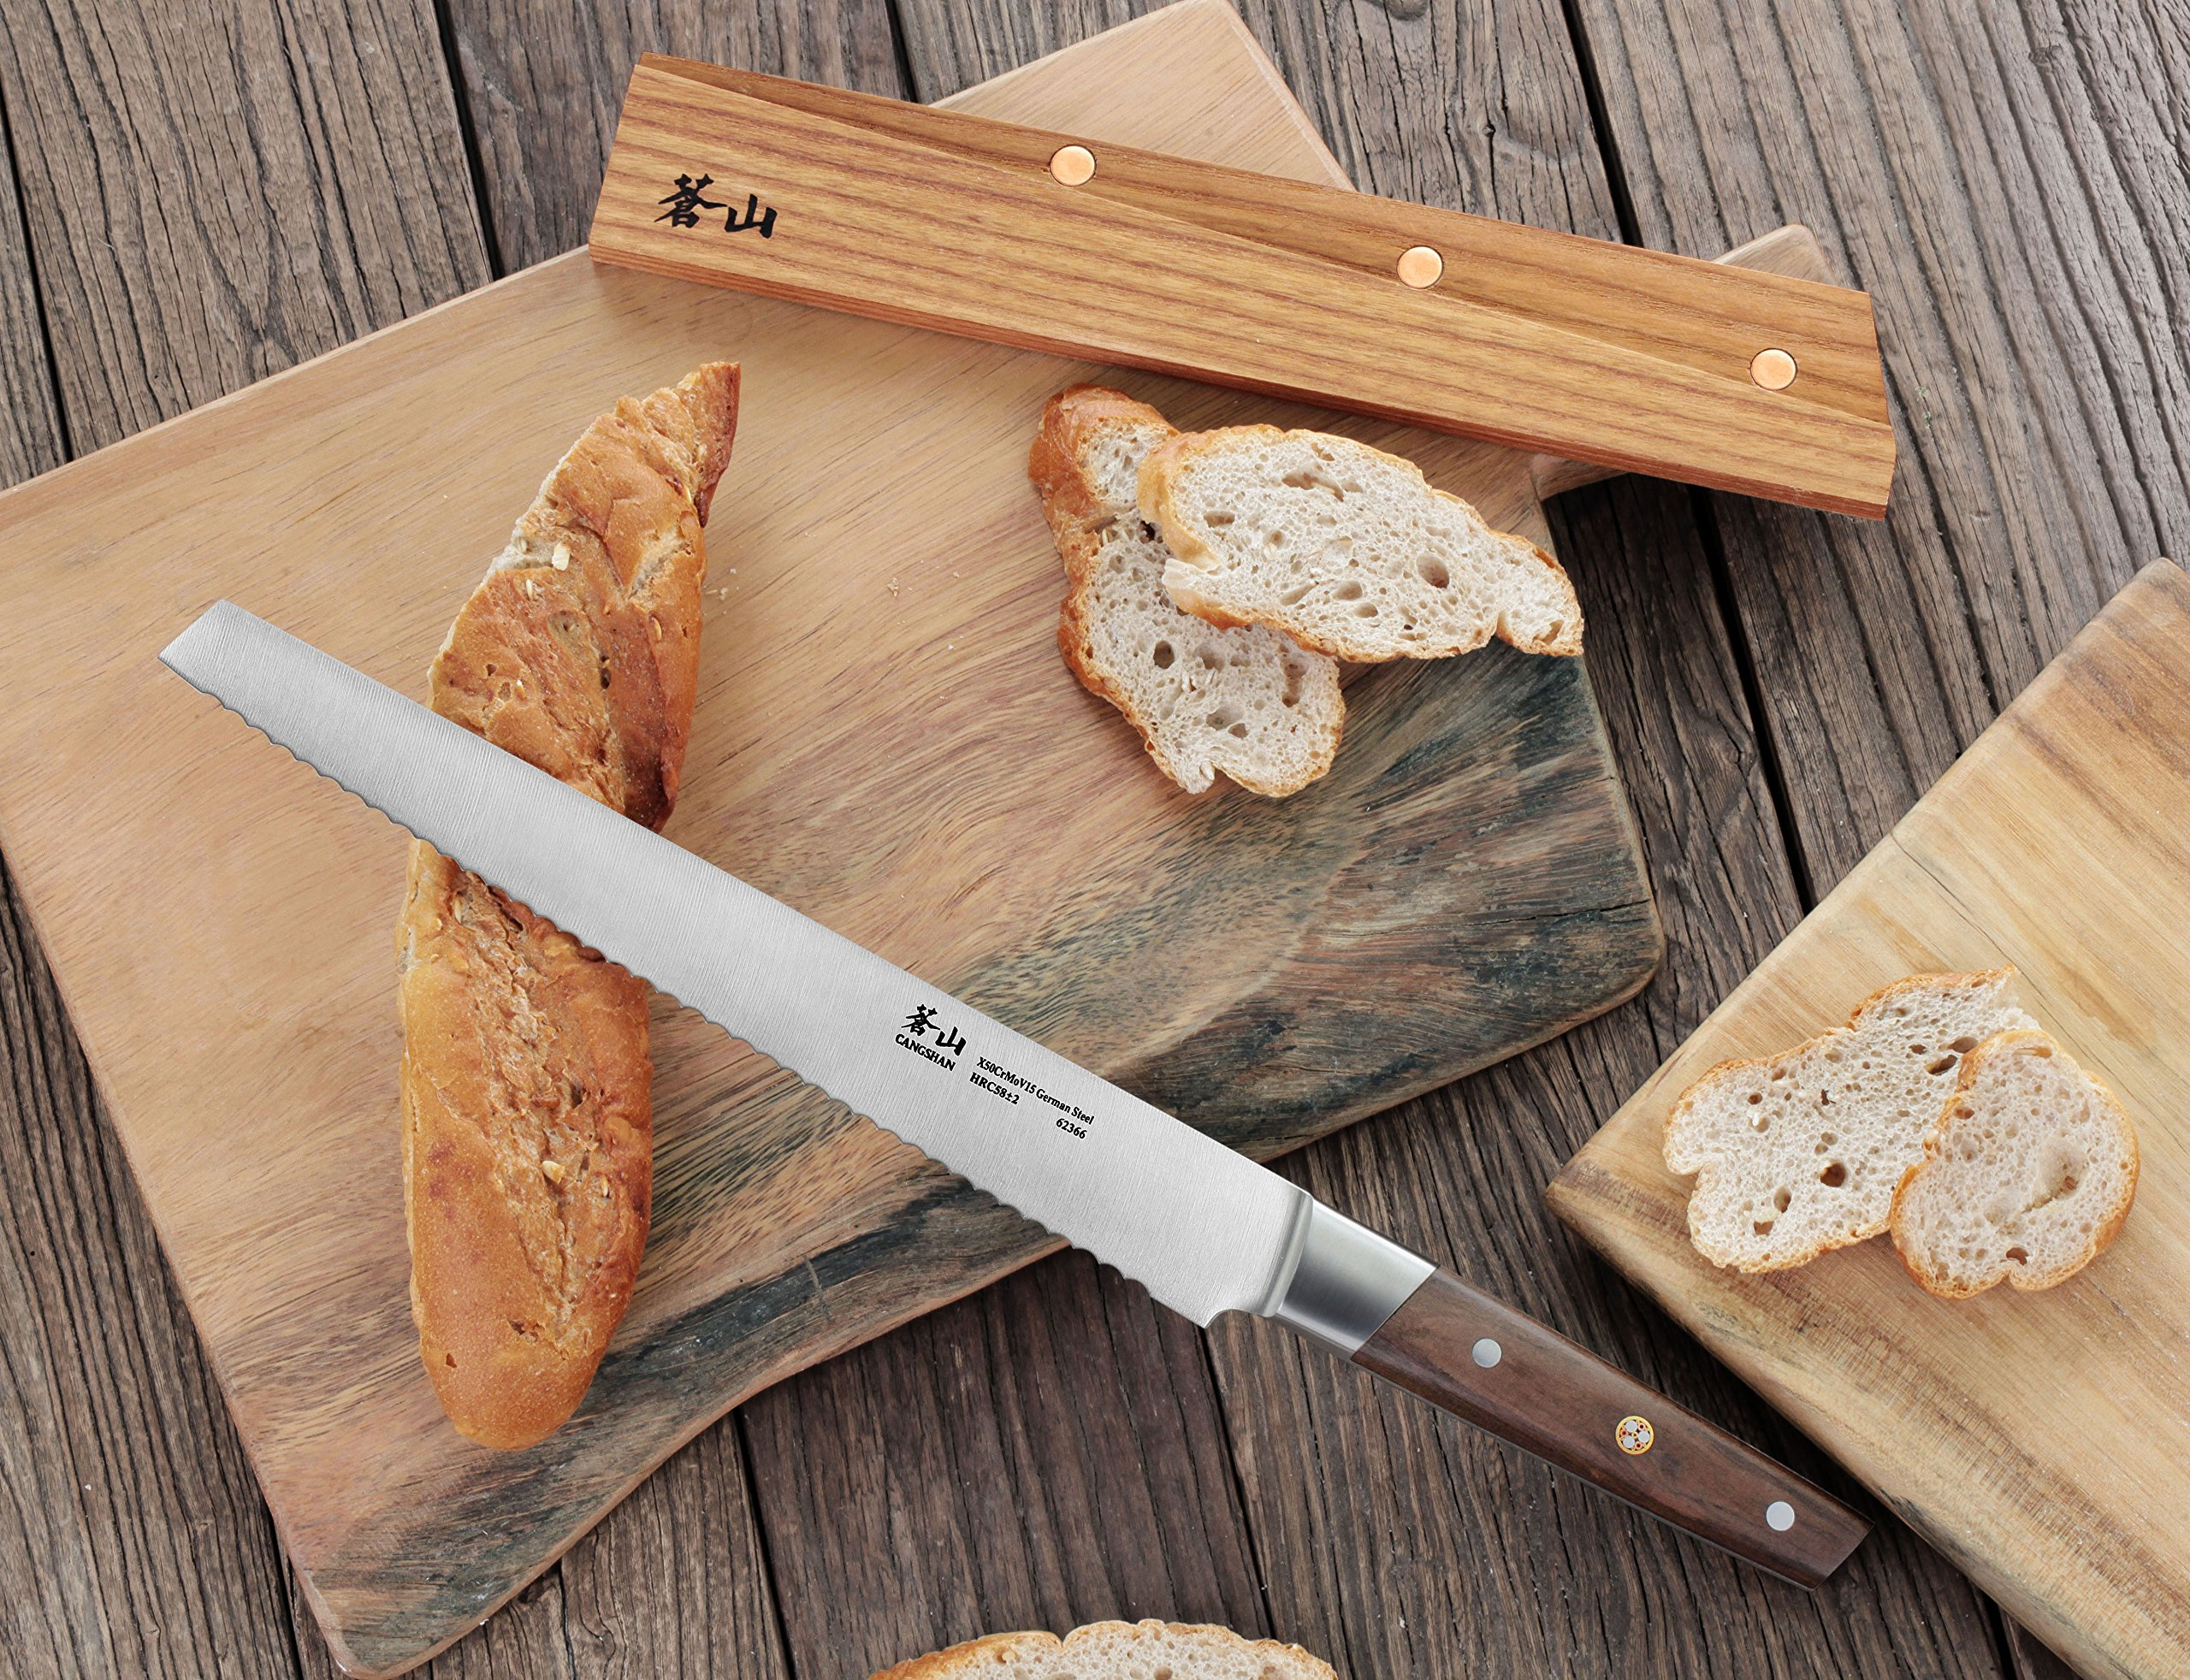 Cangshan R Series 62649 German Steel Forged Bread Knife with Ashwood Sheath, 10.25-Inch 5 Unique patent pending design that focuses on rich ultra-dense African blackwood handle Full tang forged from x50cr15mov german steel with hrc 58 +/- 2 on the rockwell hardness scale 8 in. bread knife perfect for slicing through a types of bread